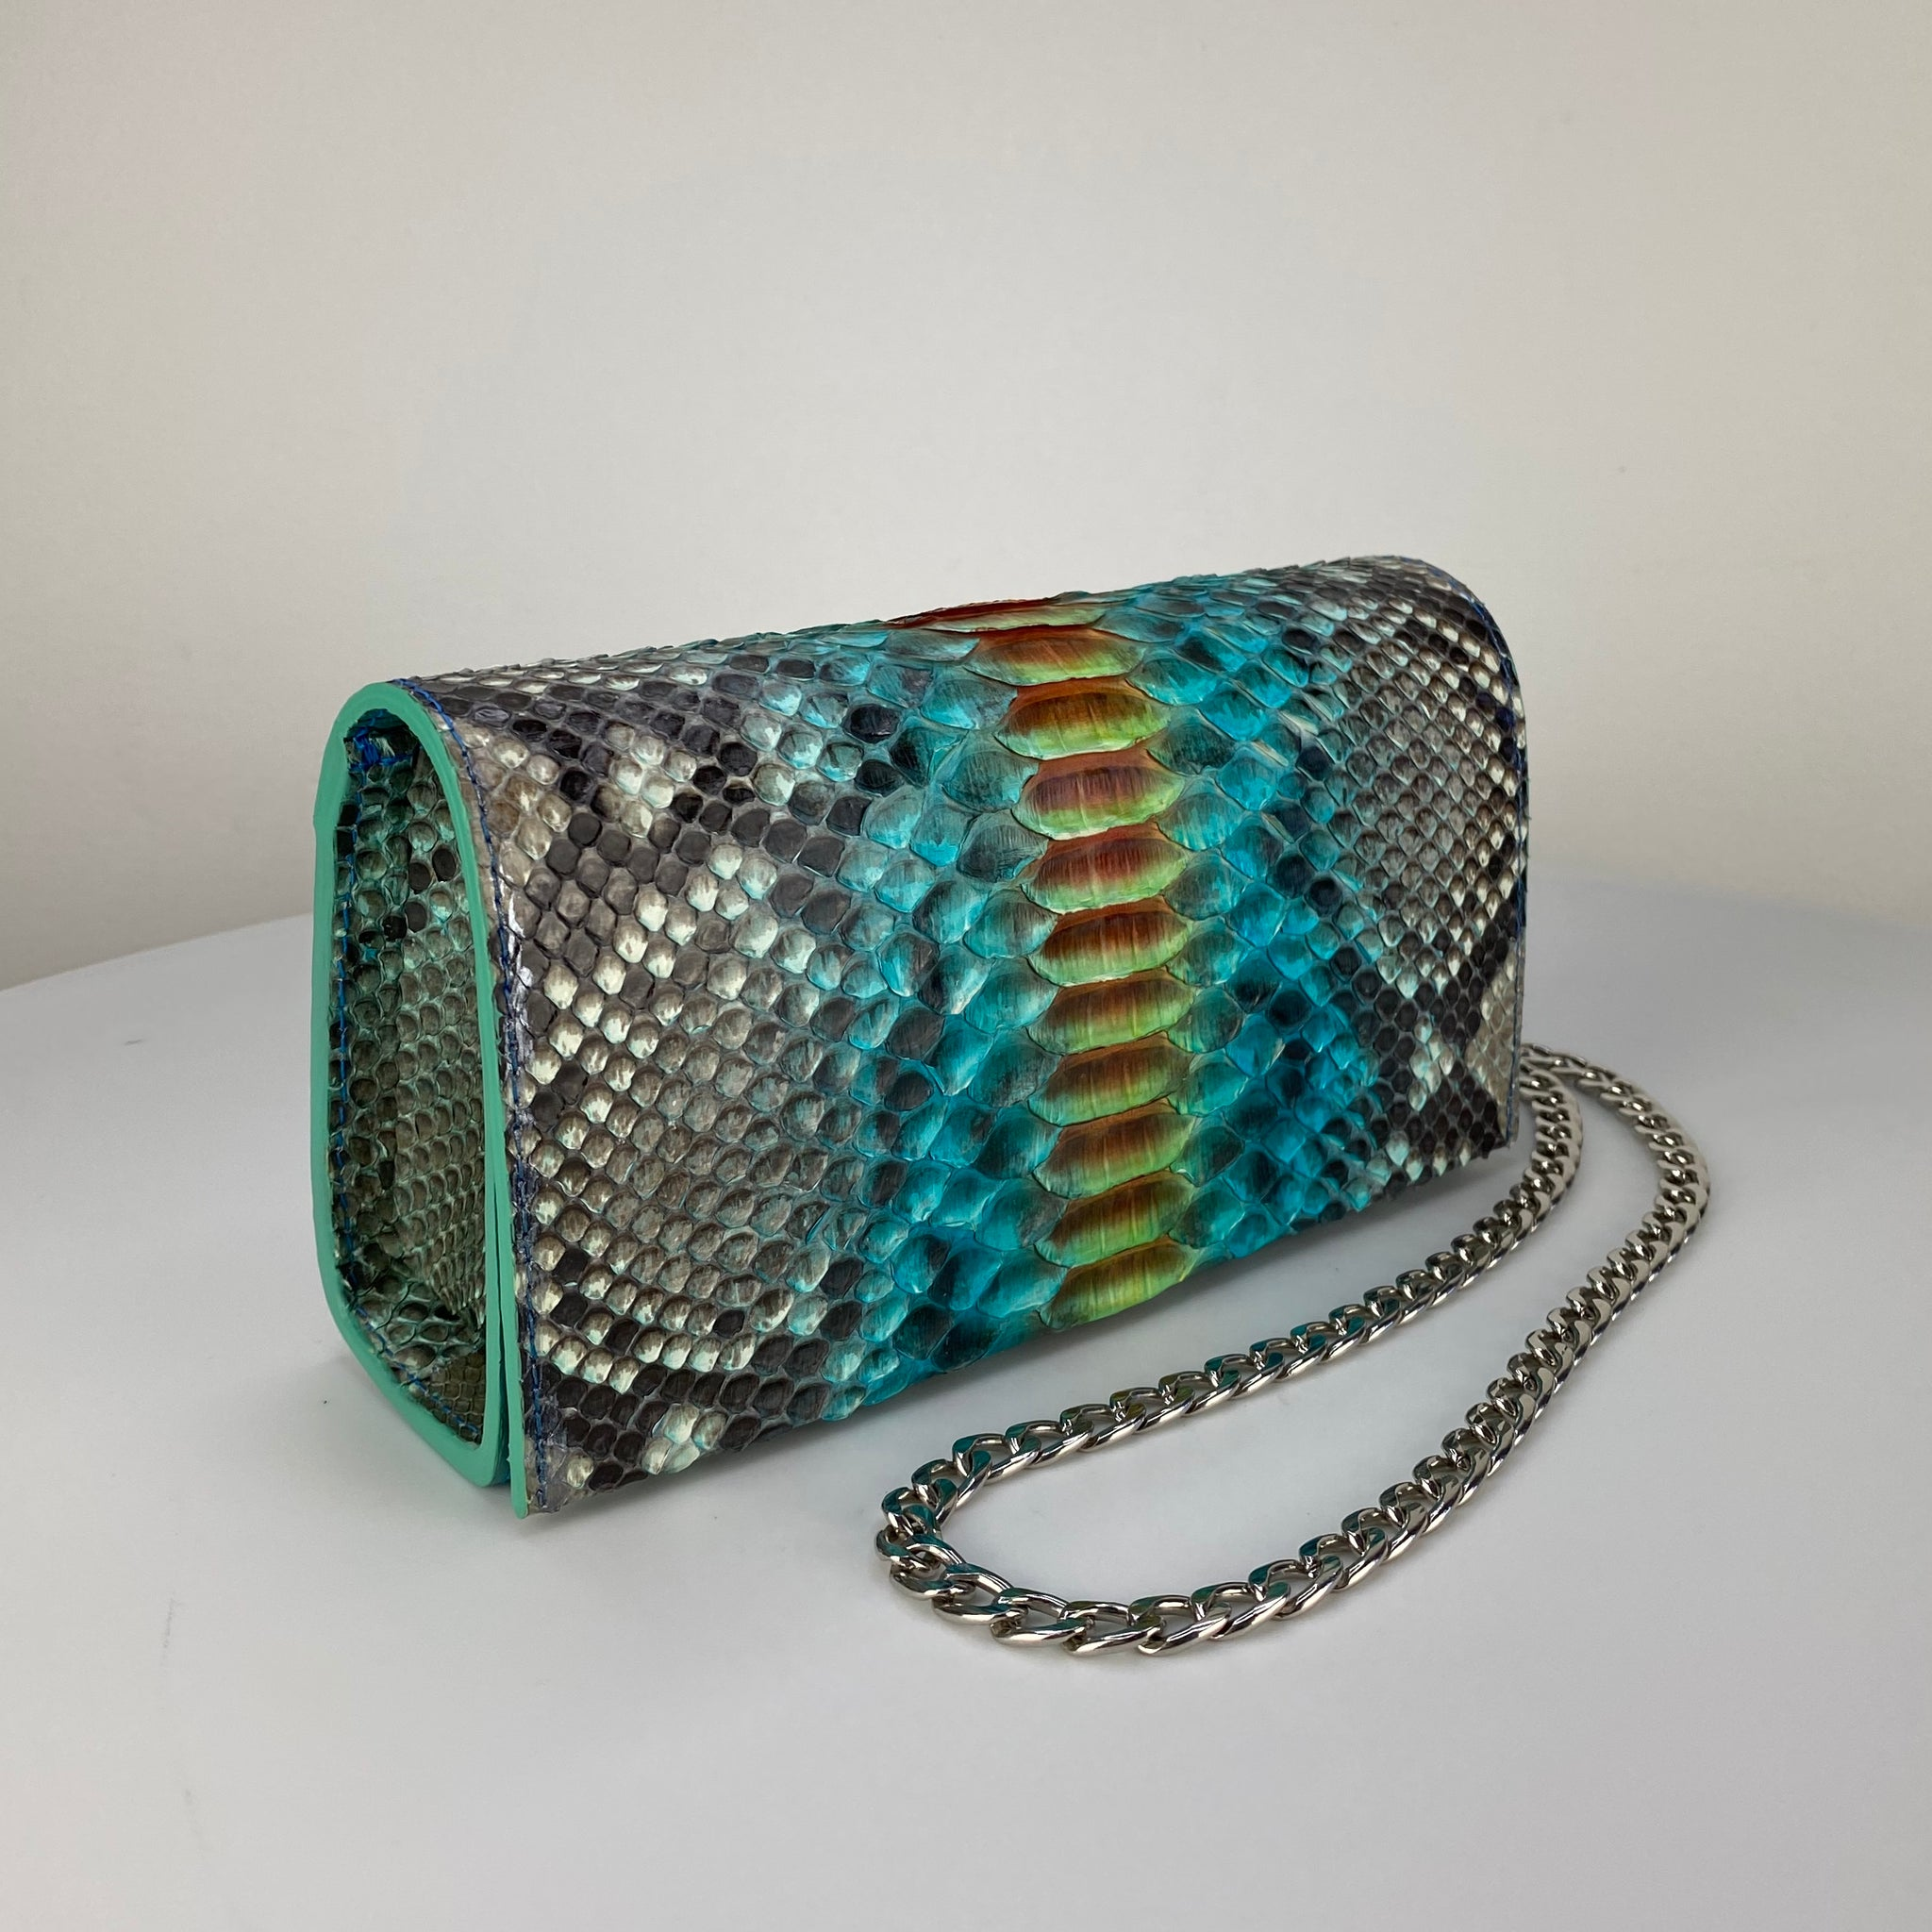 TURQUOISE & ORANGE BOX CLUTCH, EXOTIC